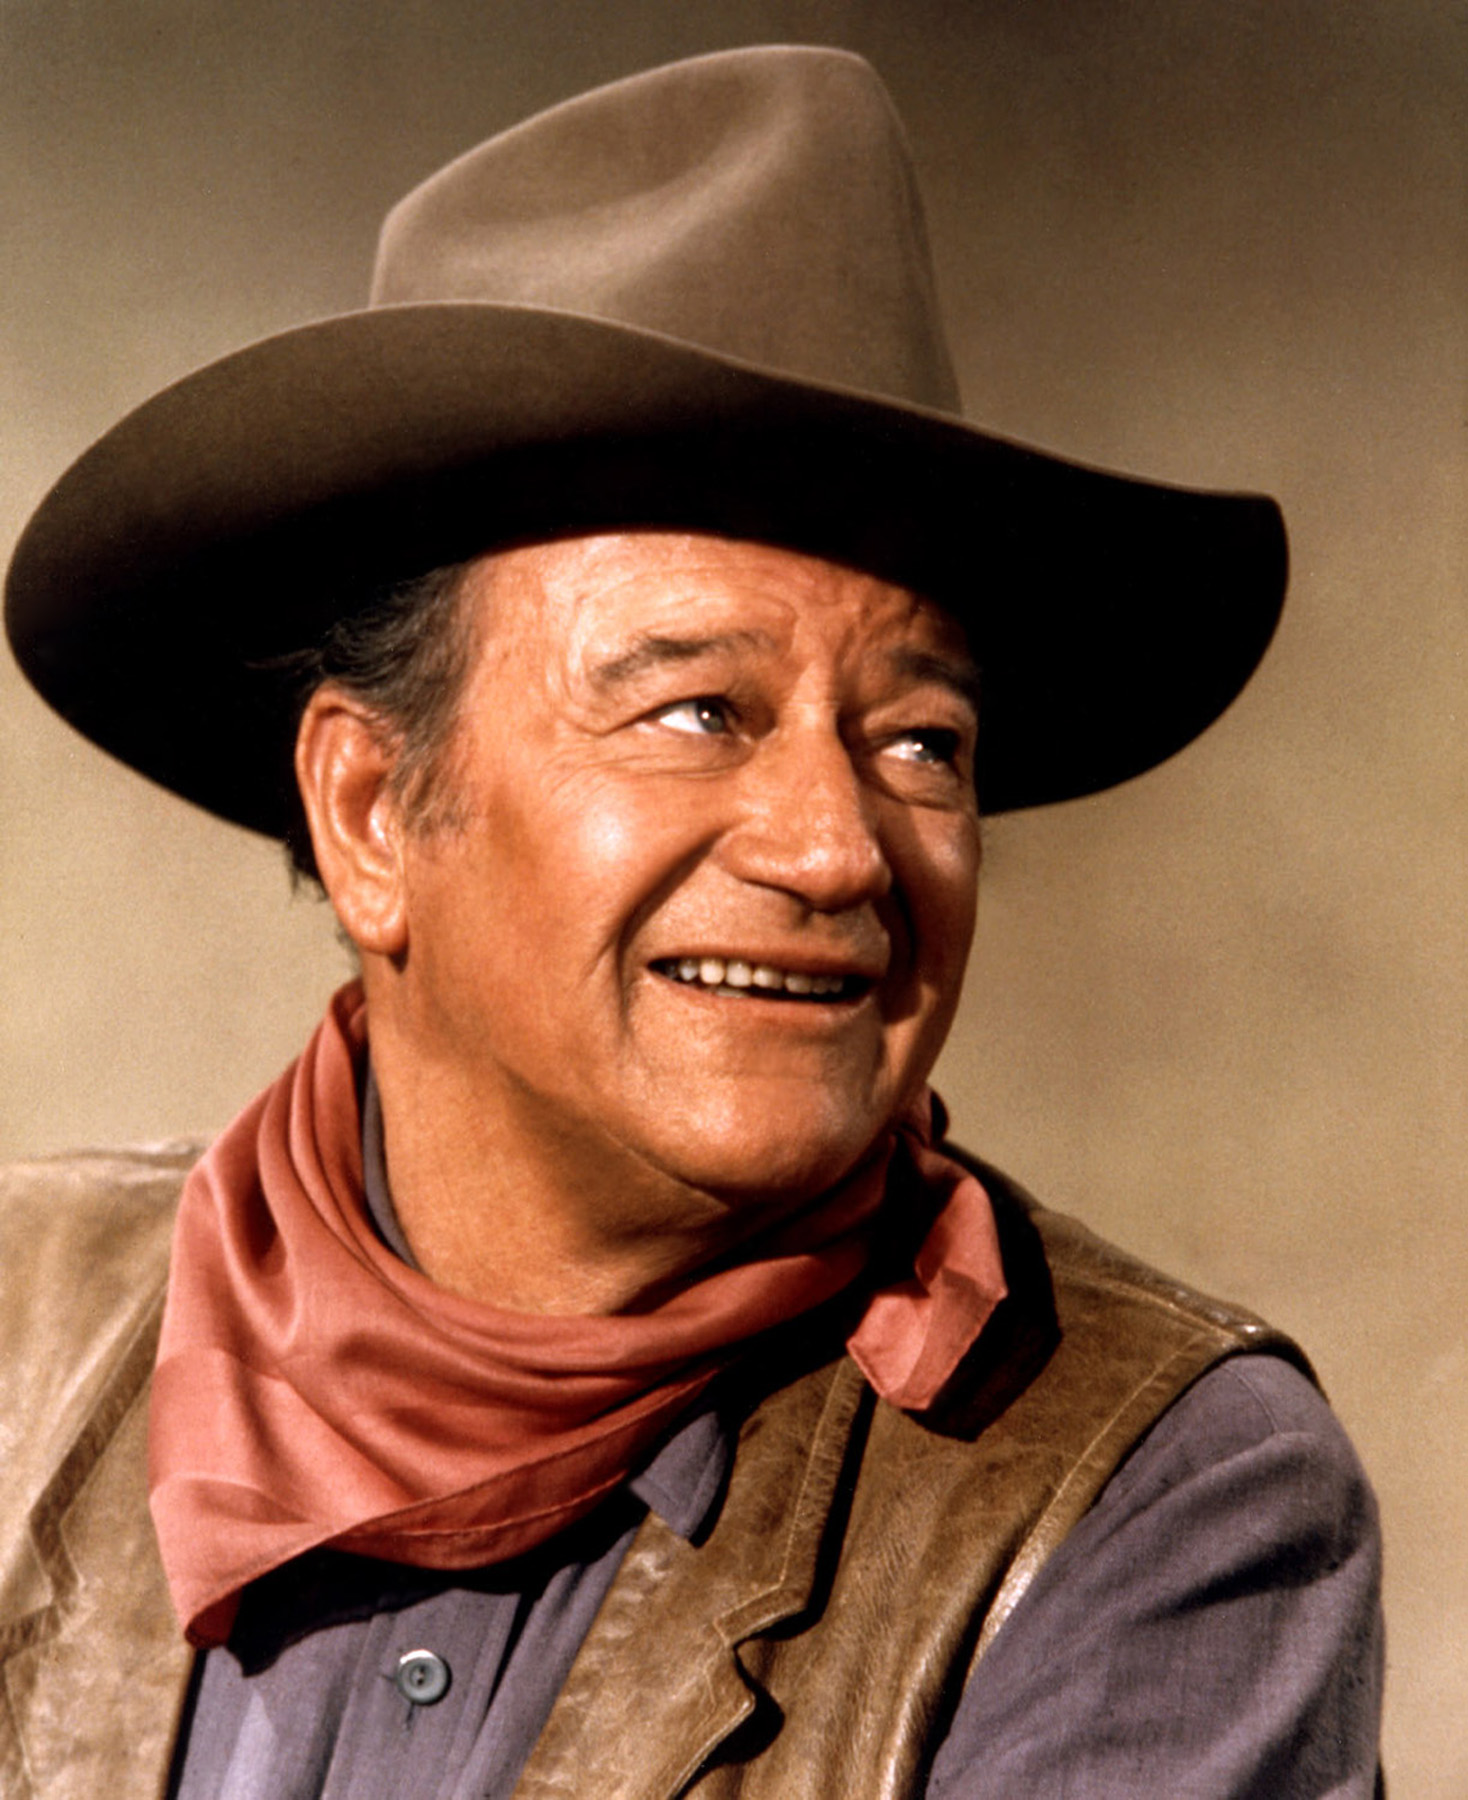 a biography of marion morrison known as john wayne in the movies Home legacy introduction biography timeline awards quotes that marion morrison acquired the name john wayne in the movies, wayne steals the movie with.